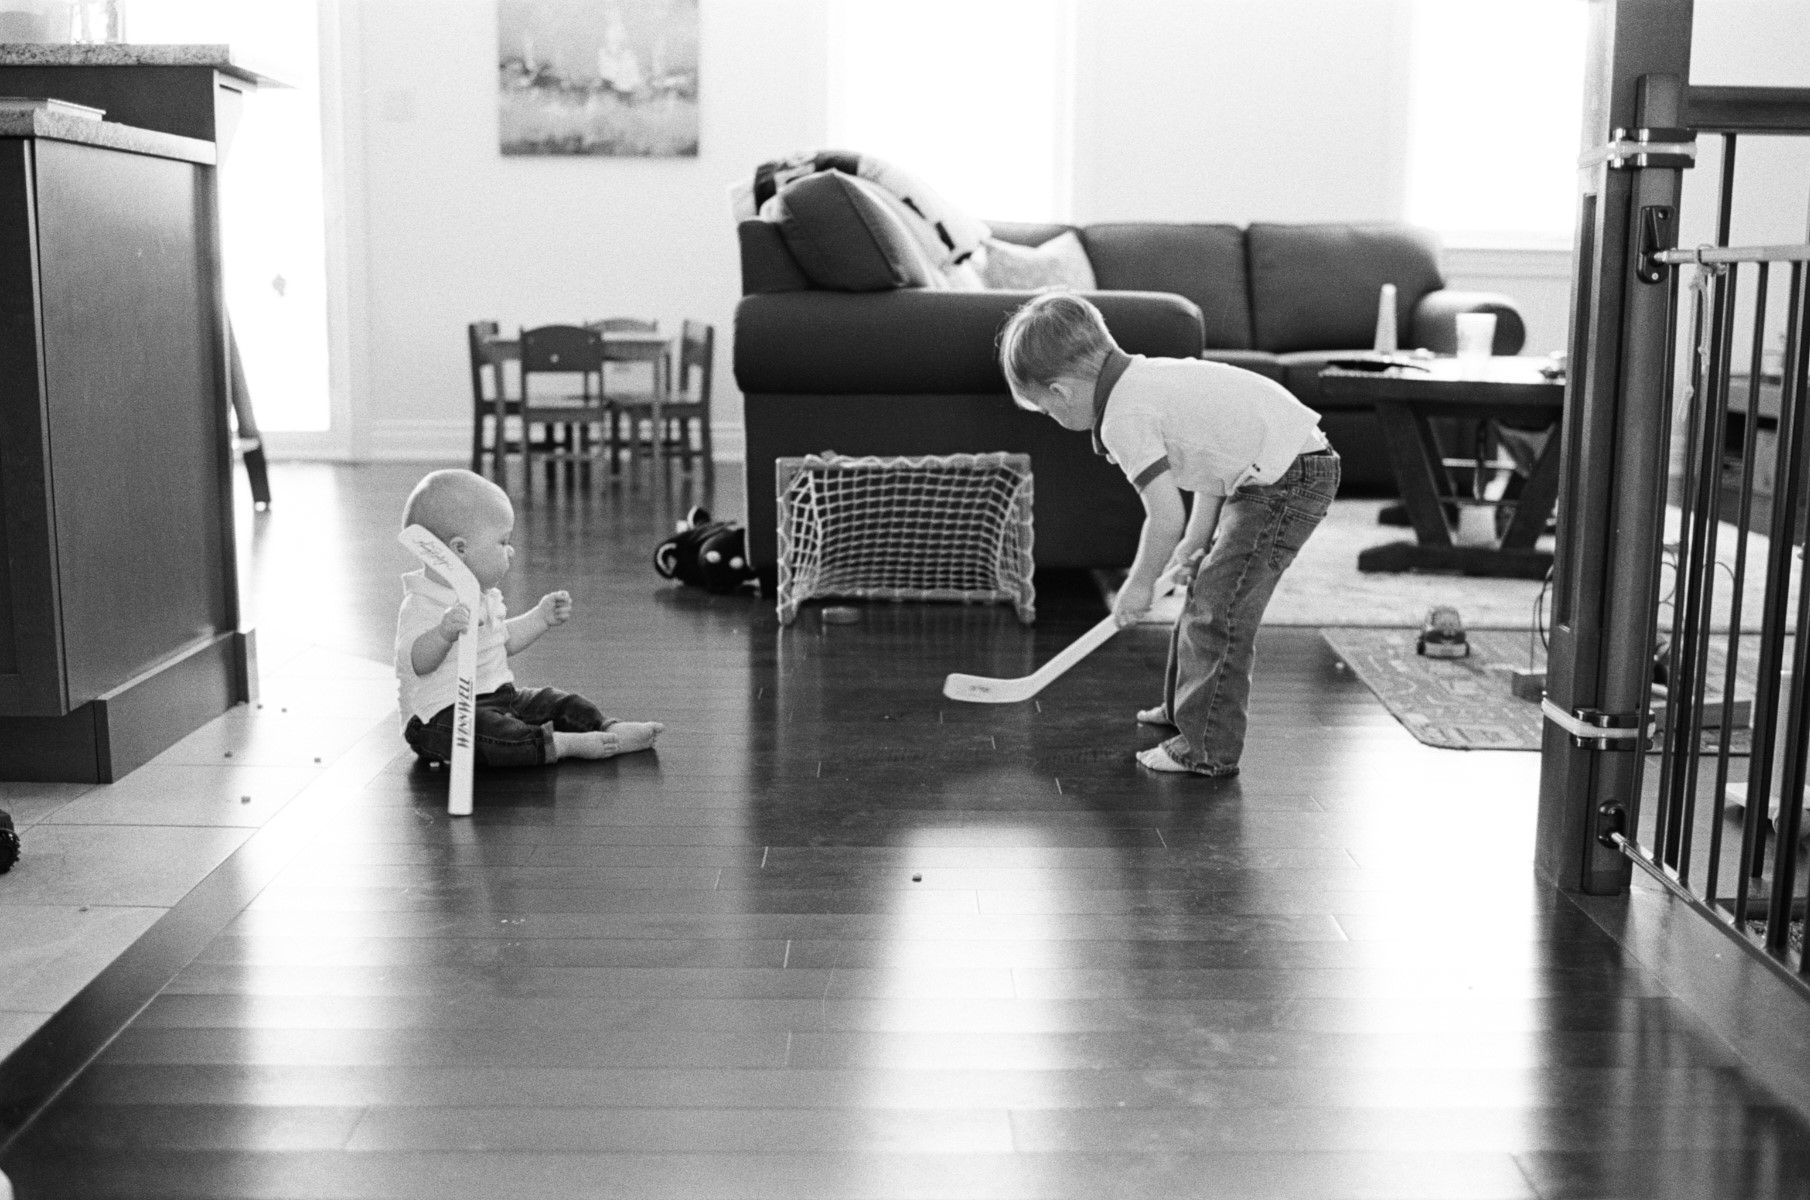 Showing your little brother hockey rules!